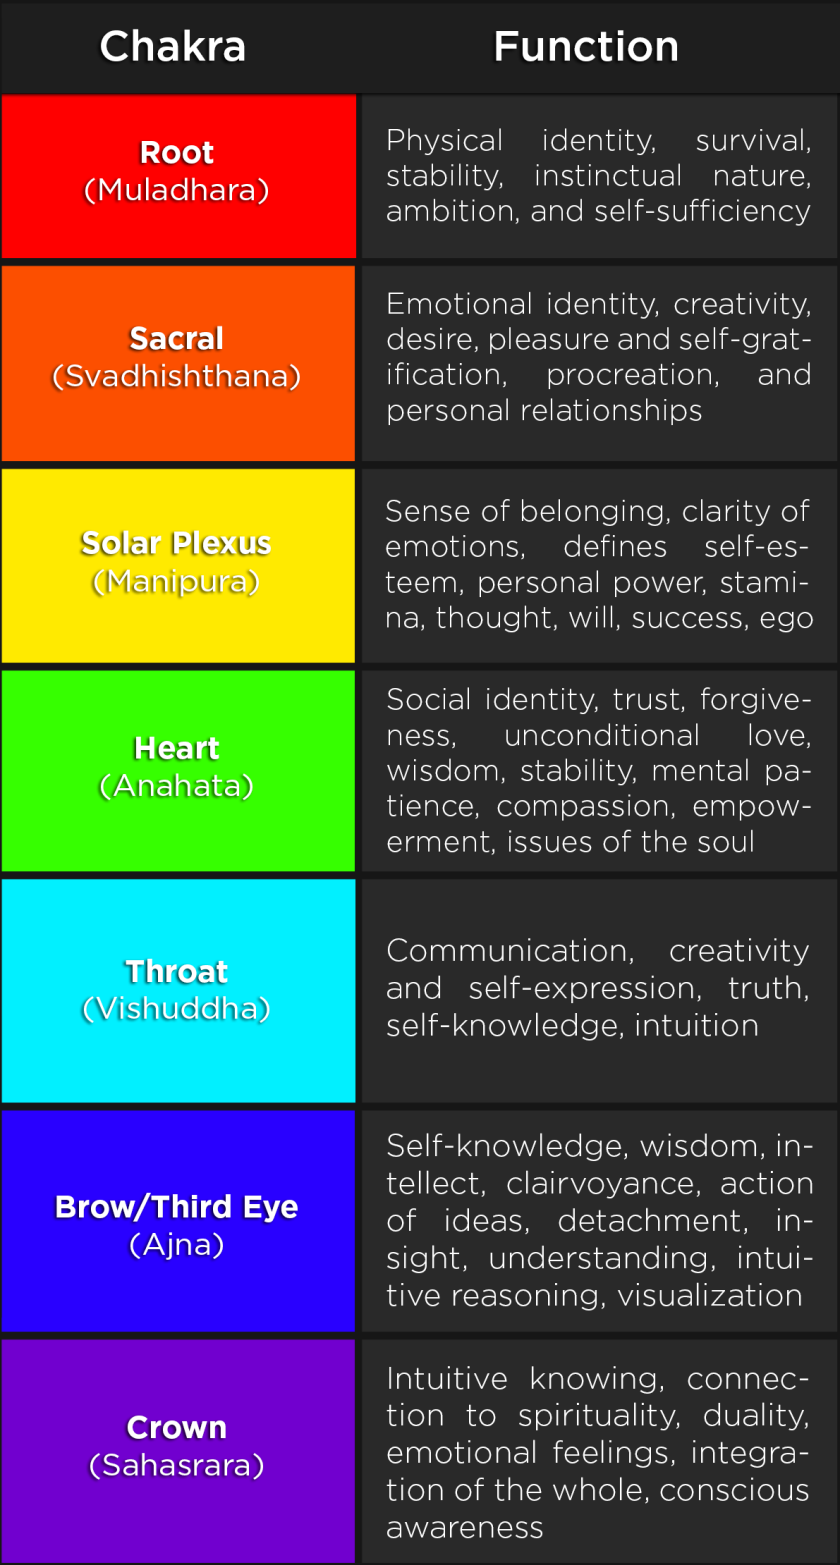 fireshot-screen-capture-079-chakra-symptoms-graphic_png-png-image-3647-x-2230-pixels-musicofsamsara_files_wordpress_com_2014_04_chakra-sympt